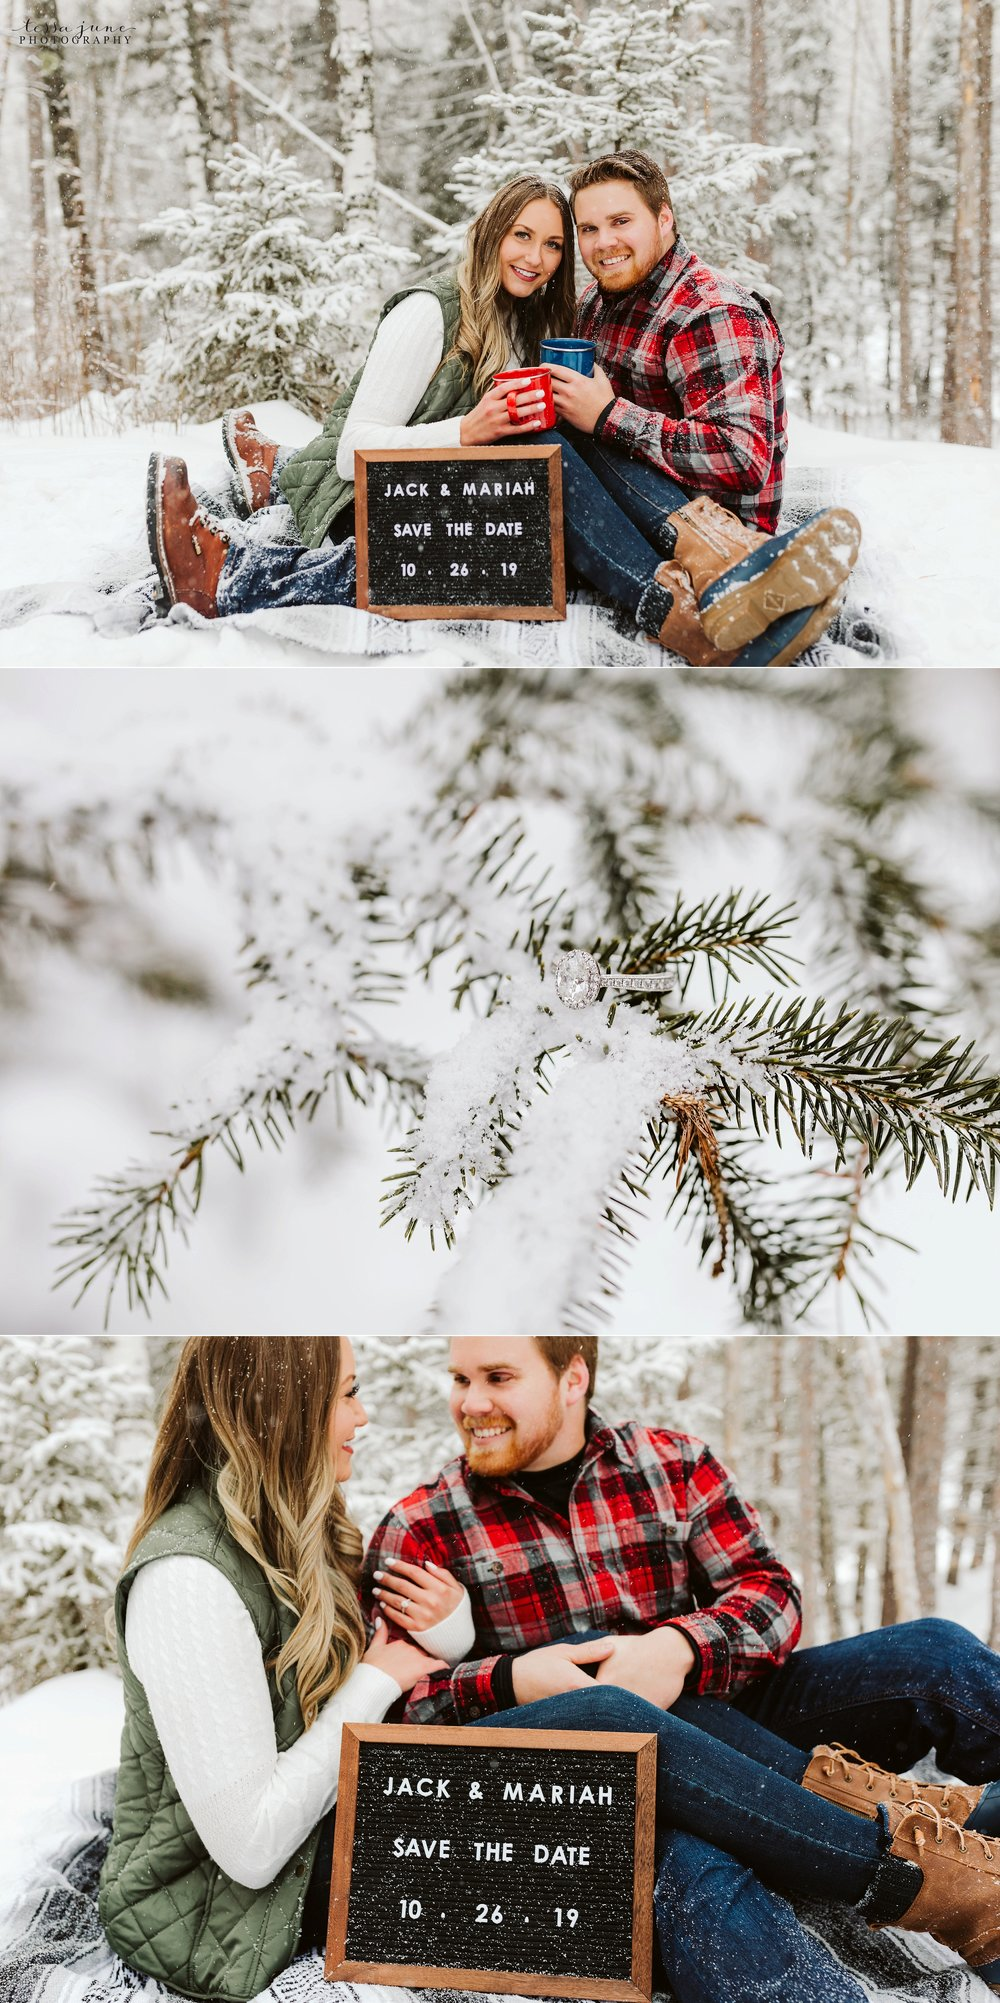 duluth-winter-engagement-forest-photos-during-snow-storm-33.jpg